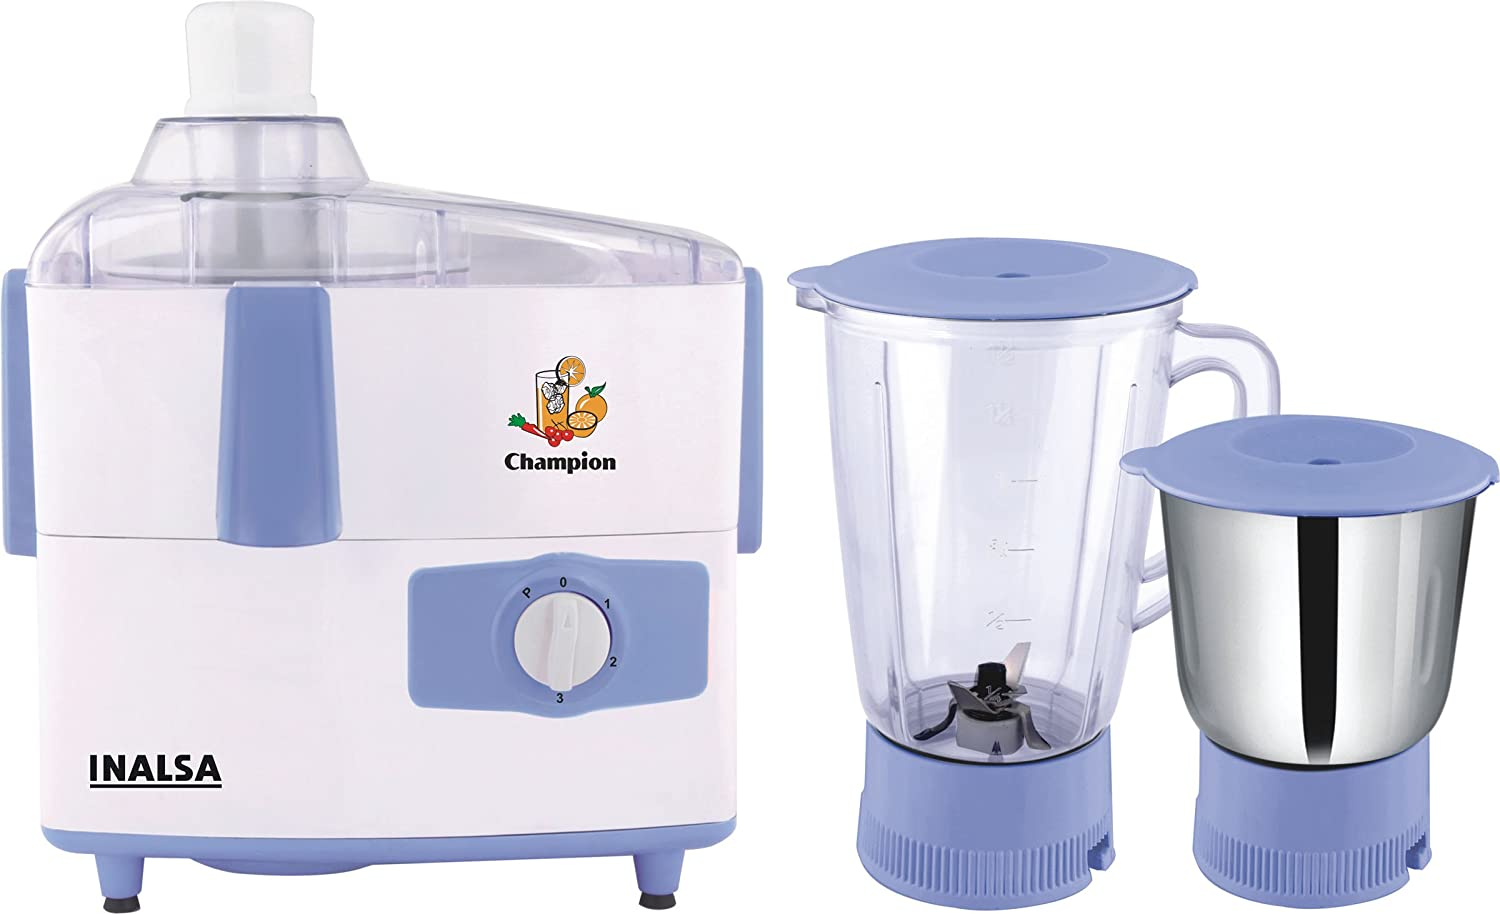 Winter Appliances Store!! Upto 50% off On Winter Appliances By Amazon   Inalsa Champion 450-Watt Juicer Mixer Grinder (White/Light Blue) @ Rs.1,799